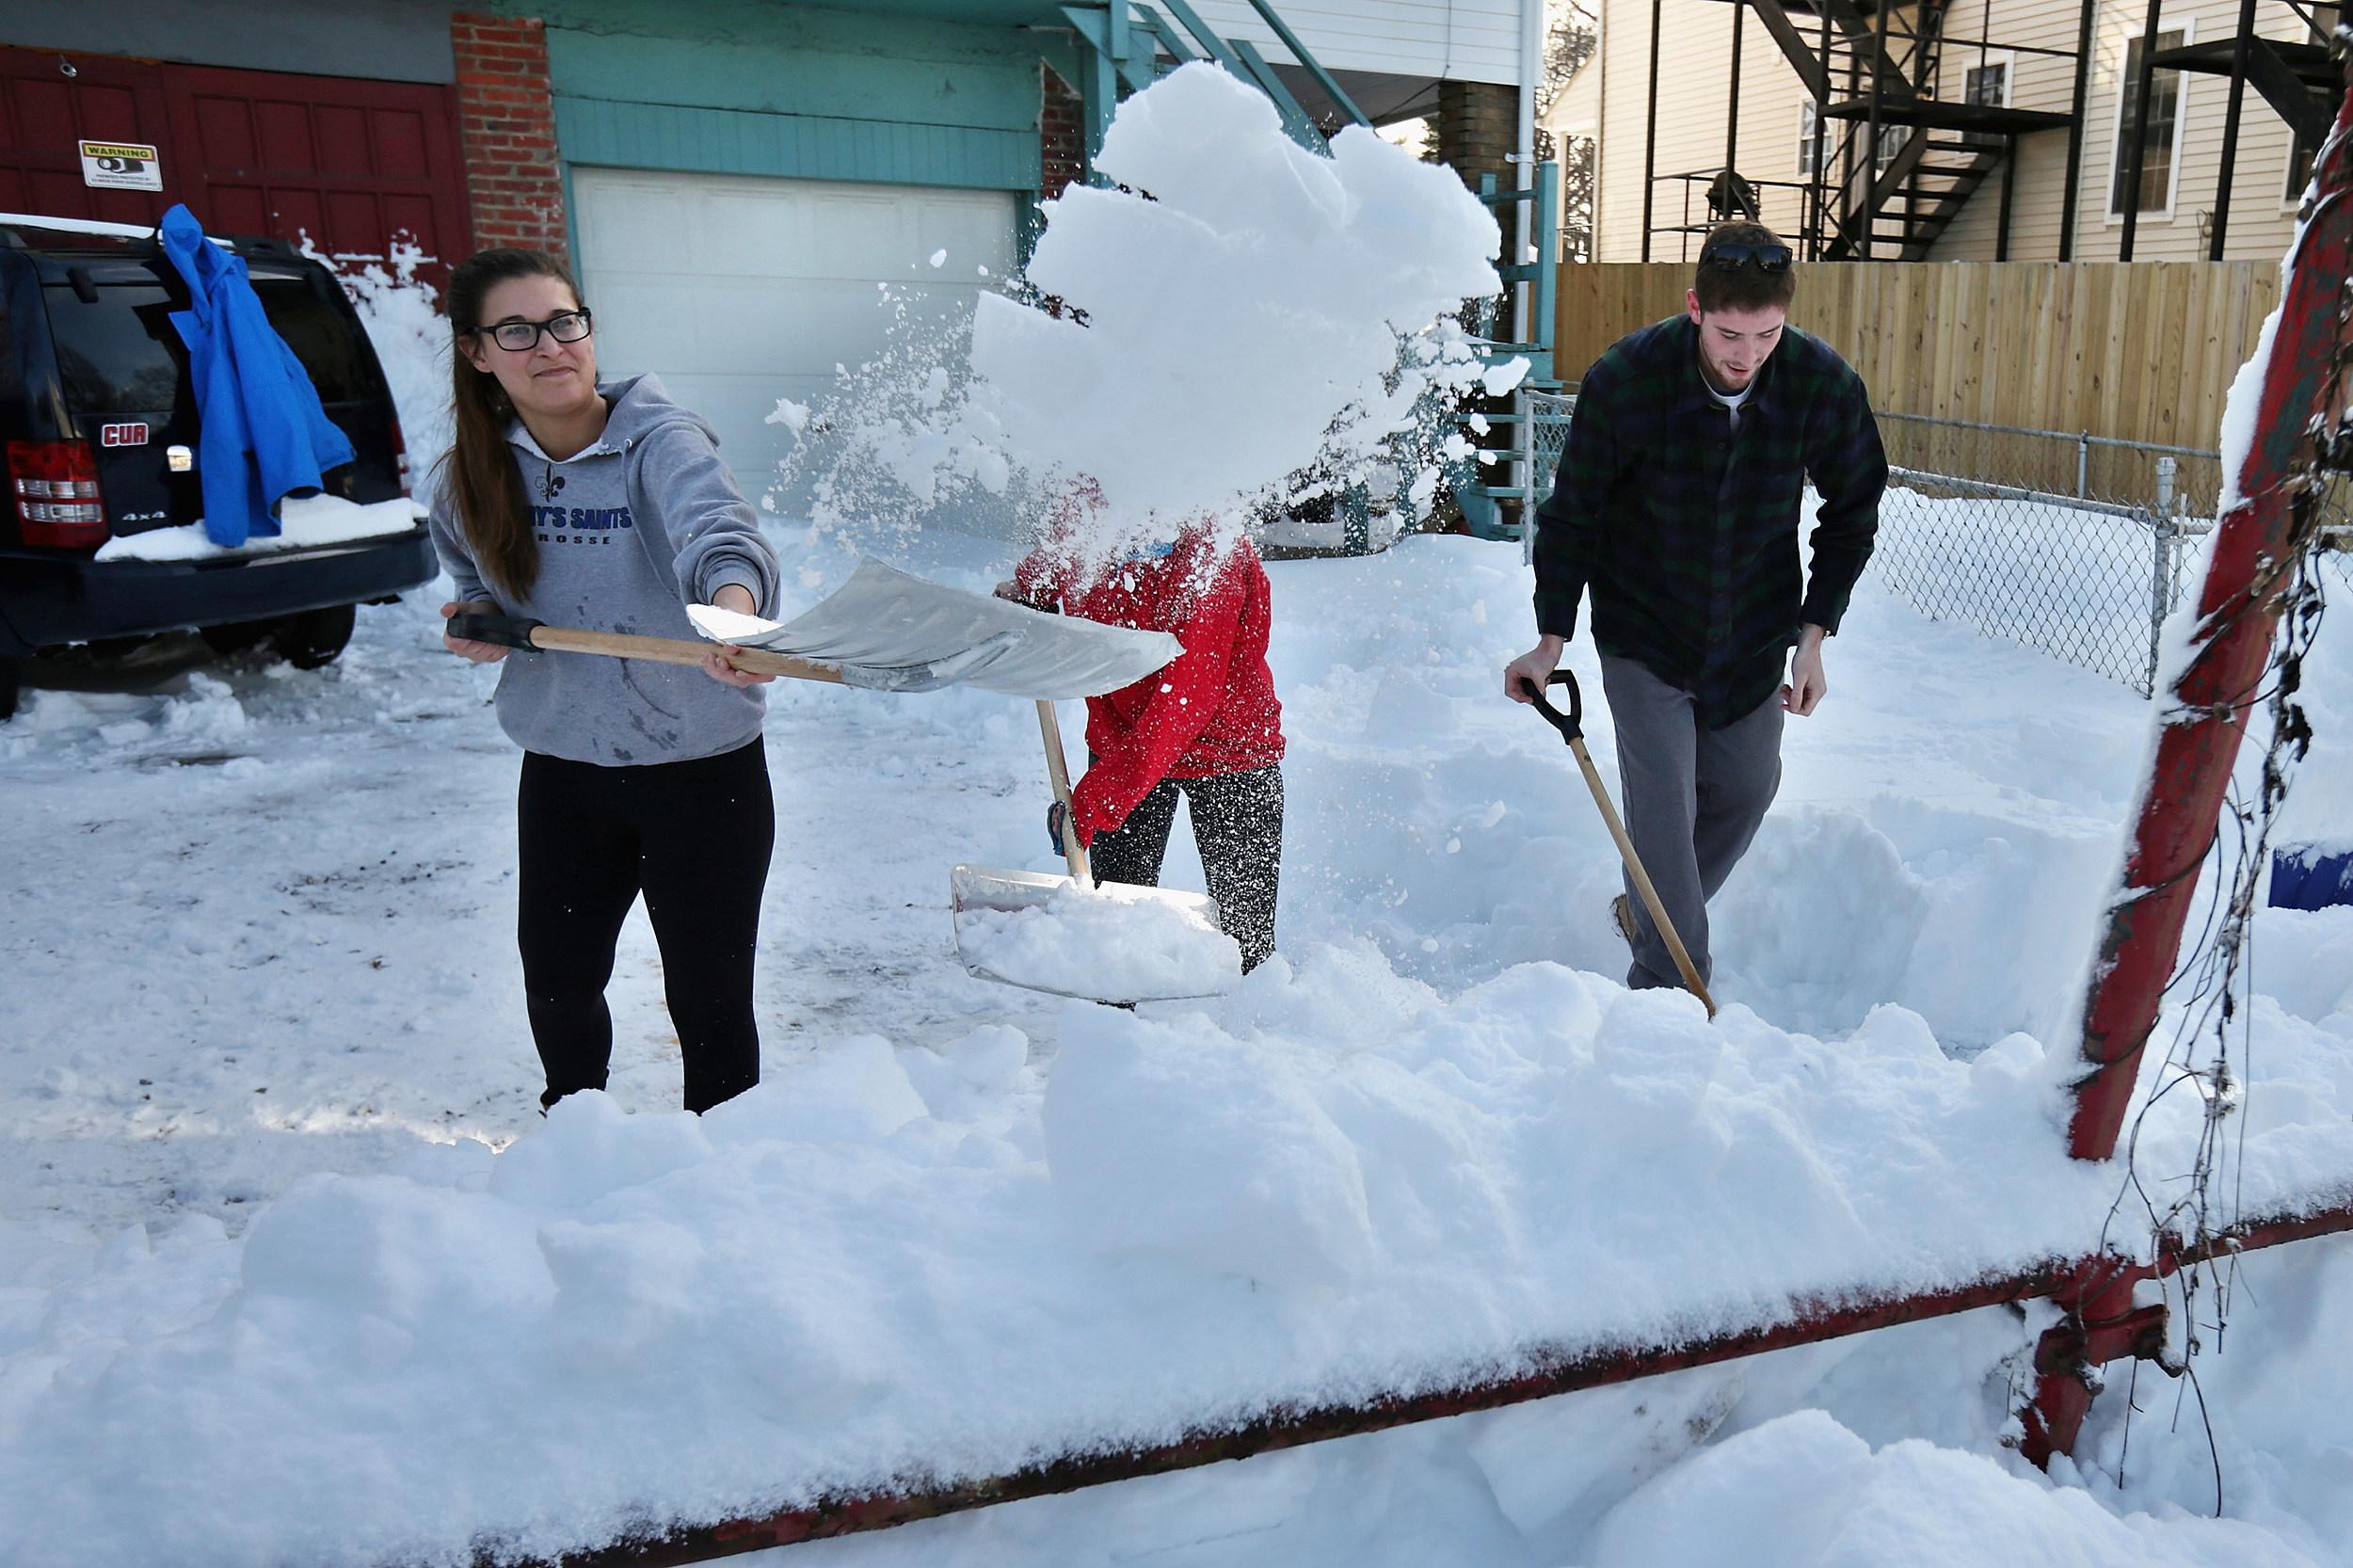 U.S. East Coast Digs Out After Historic Snowstorm